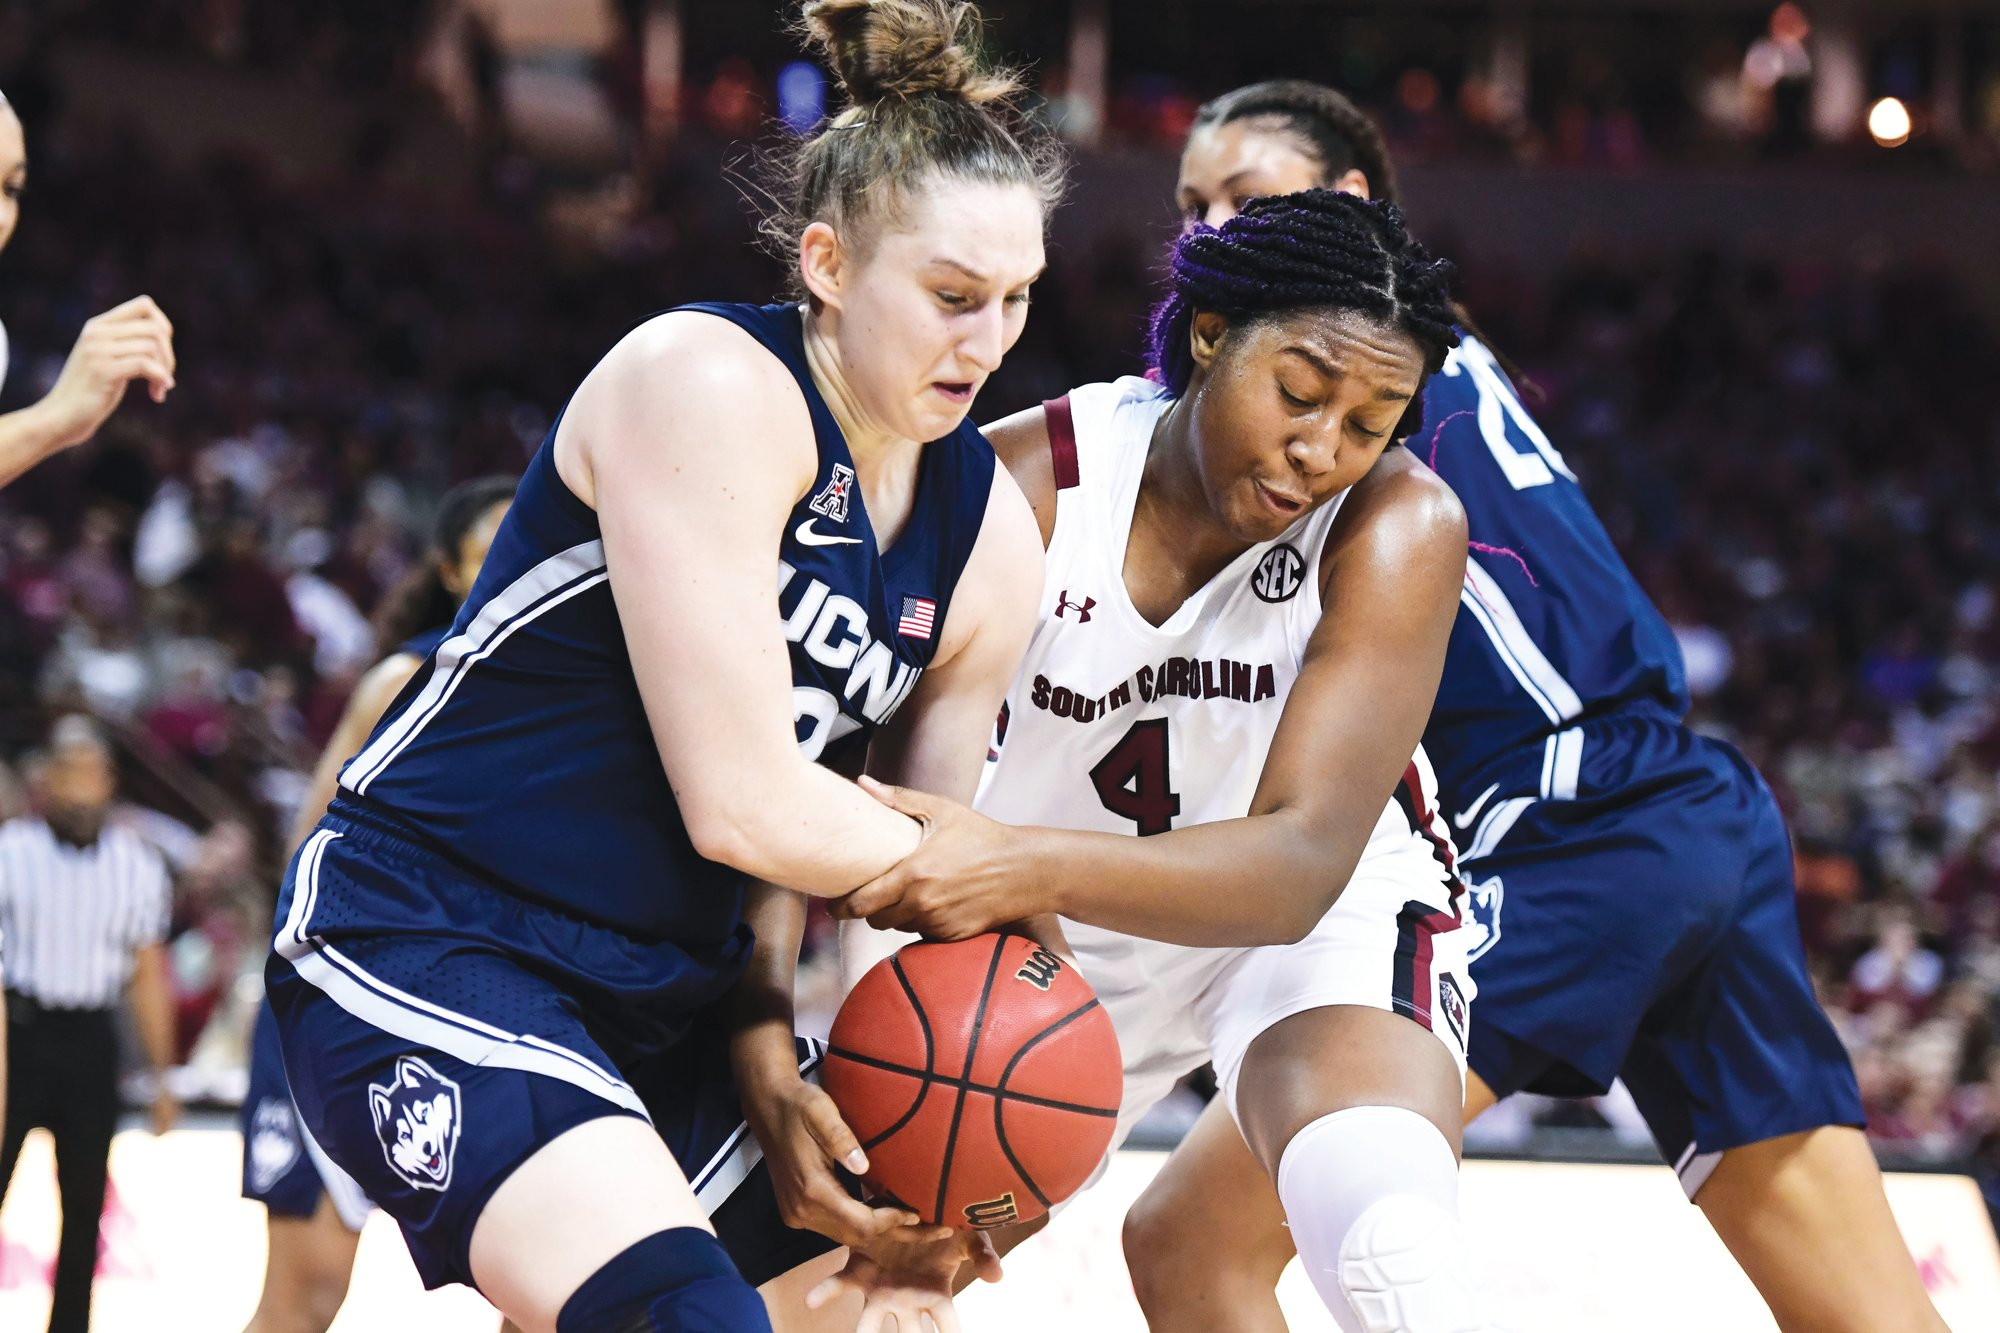 South Carolina forward Aliyah Boston (4) battles for a rebound against Connecticut guard Anna Makurat during the Gamecocks' 70-52 win on Monday in Columbia.